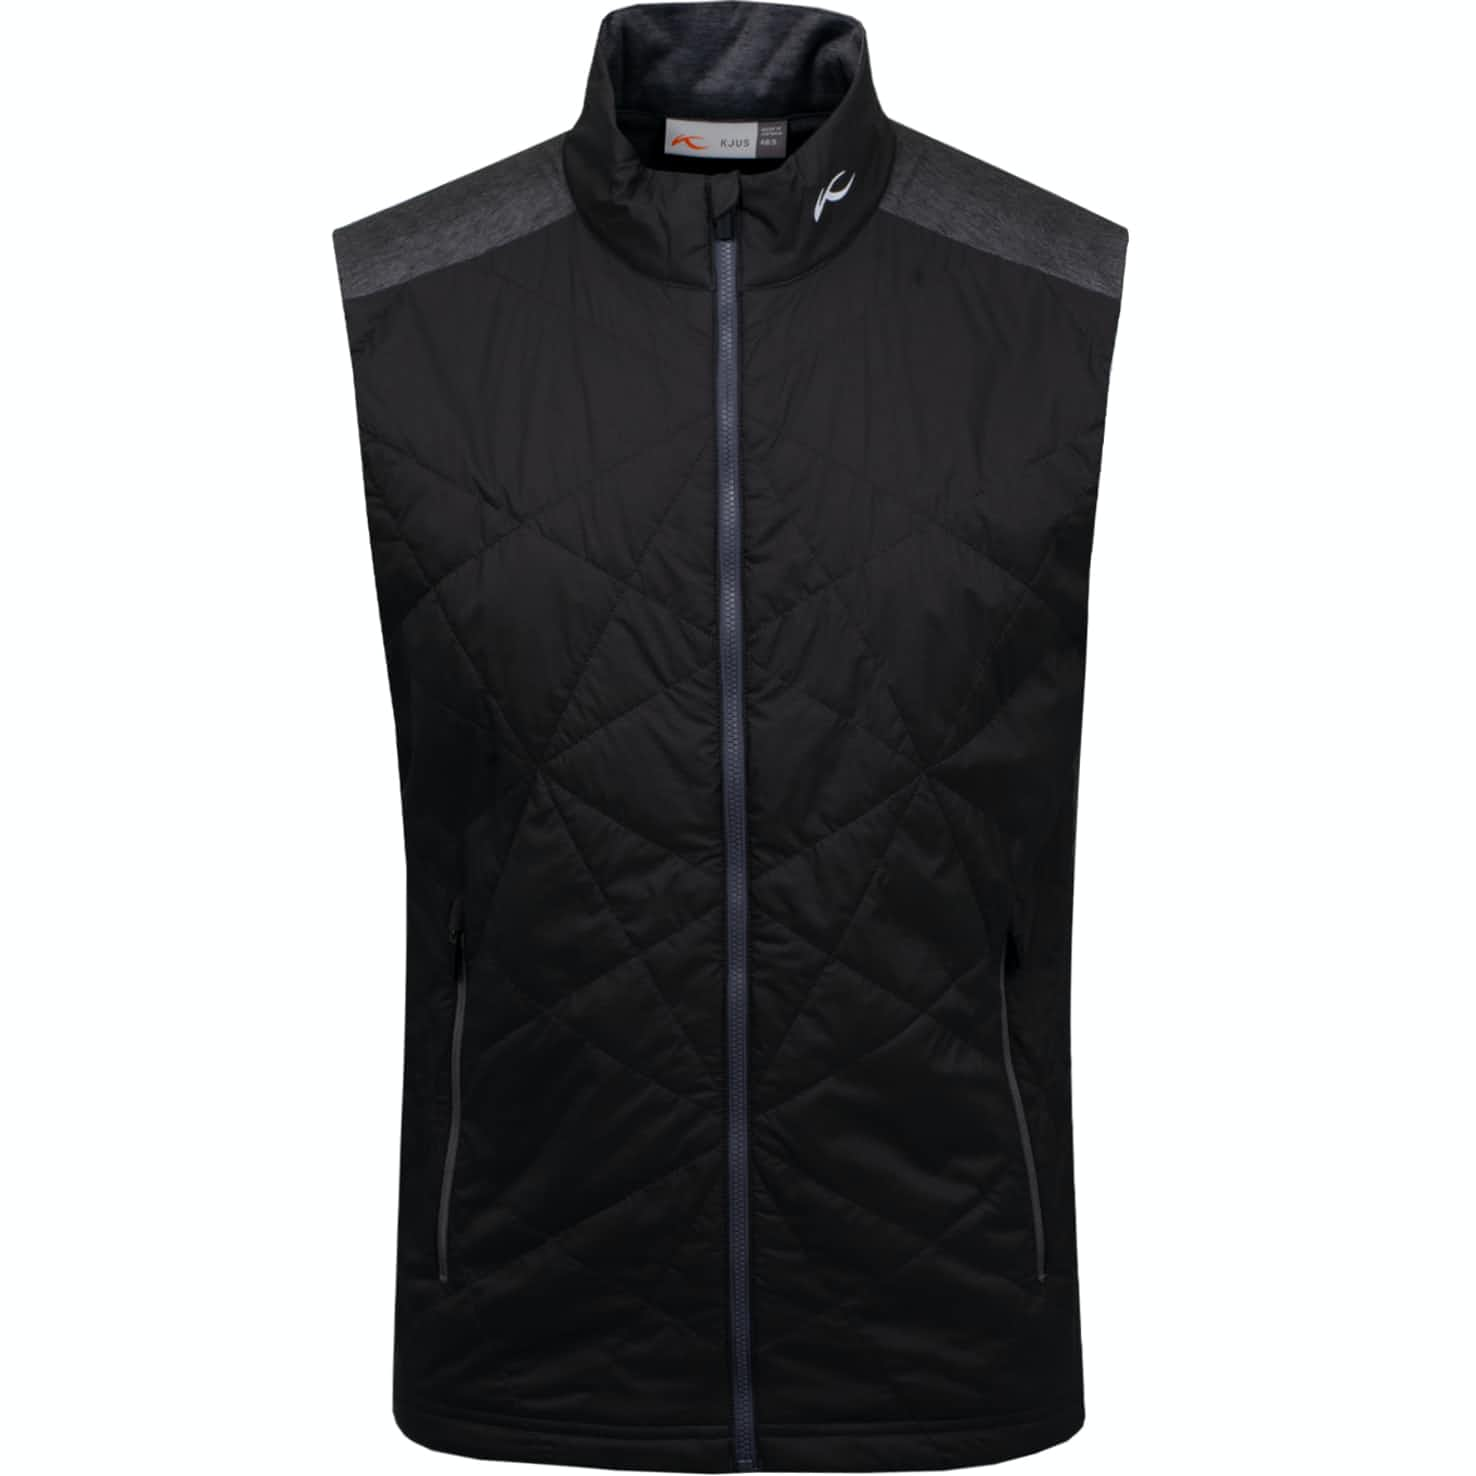 Retention Vest Dark Dusk/Steel Grey - 2020